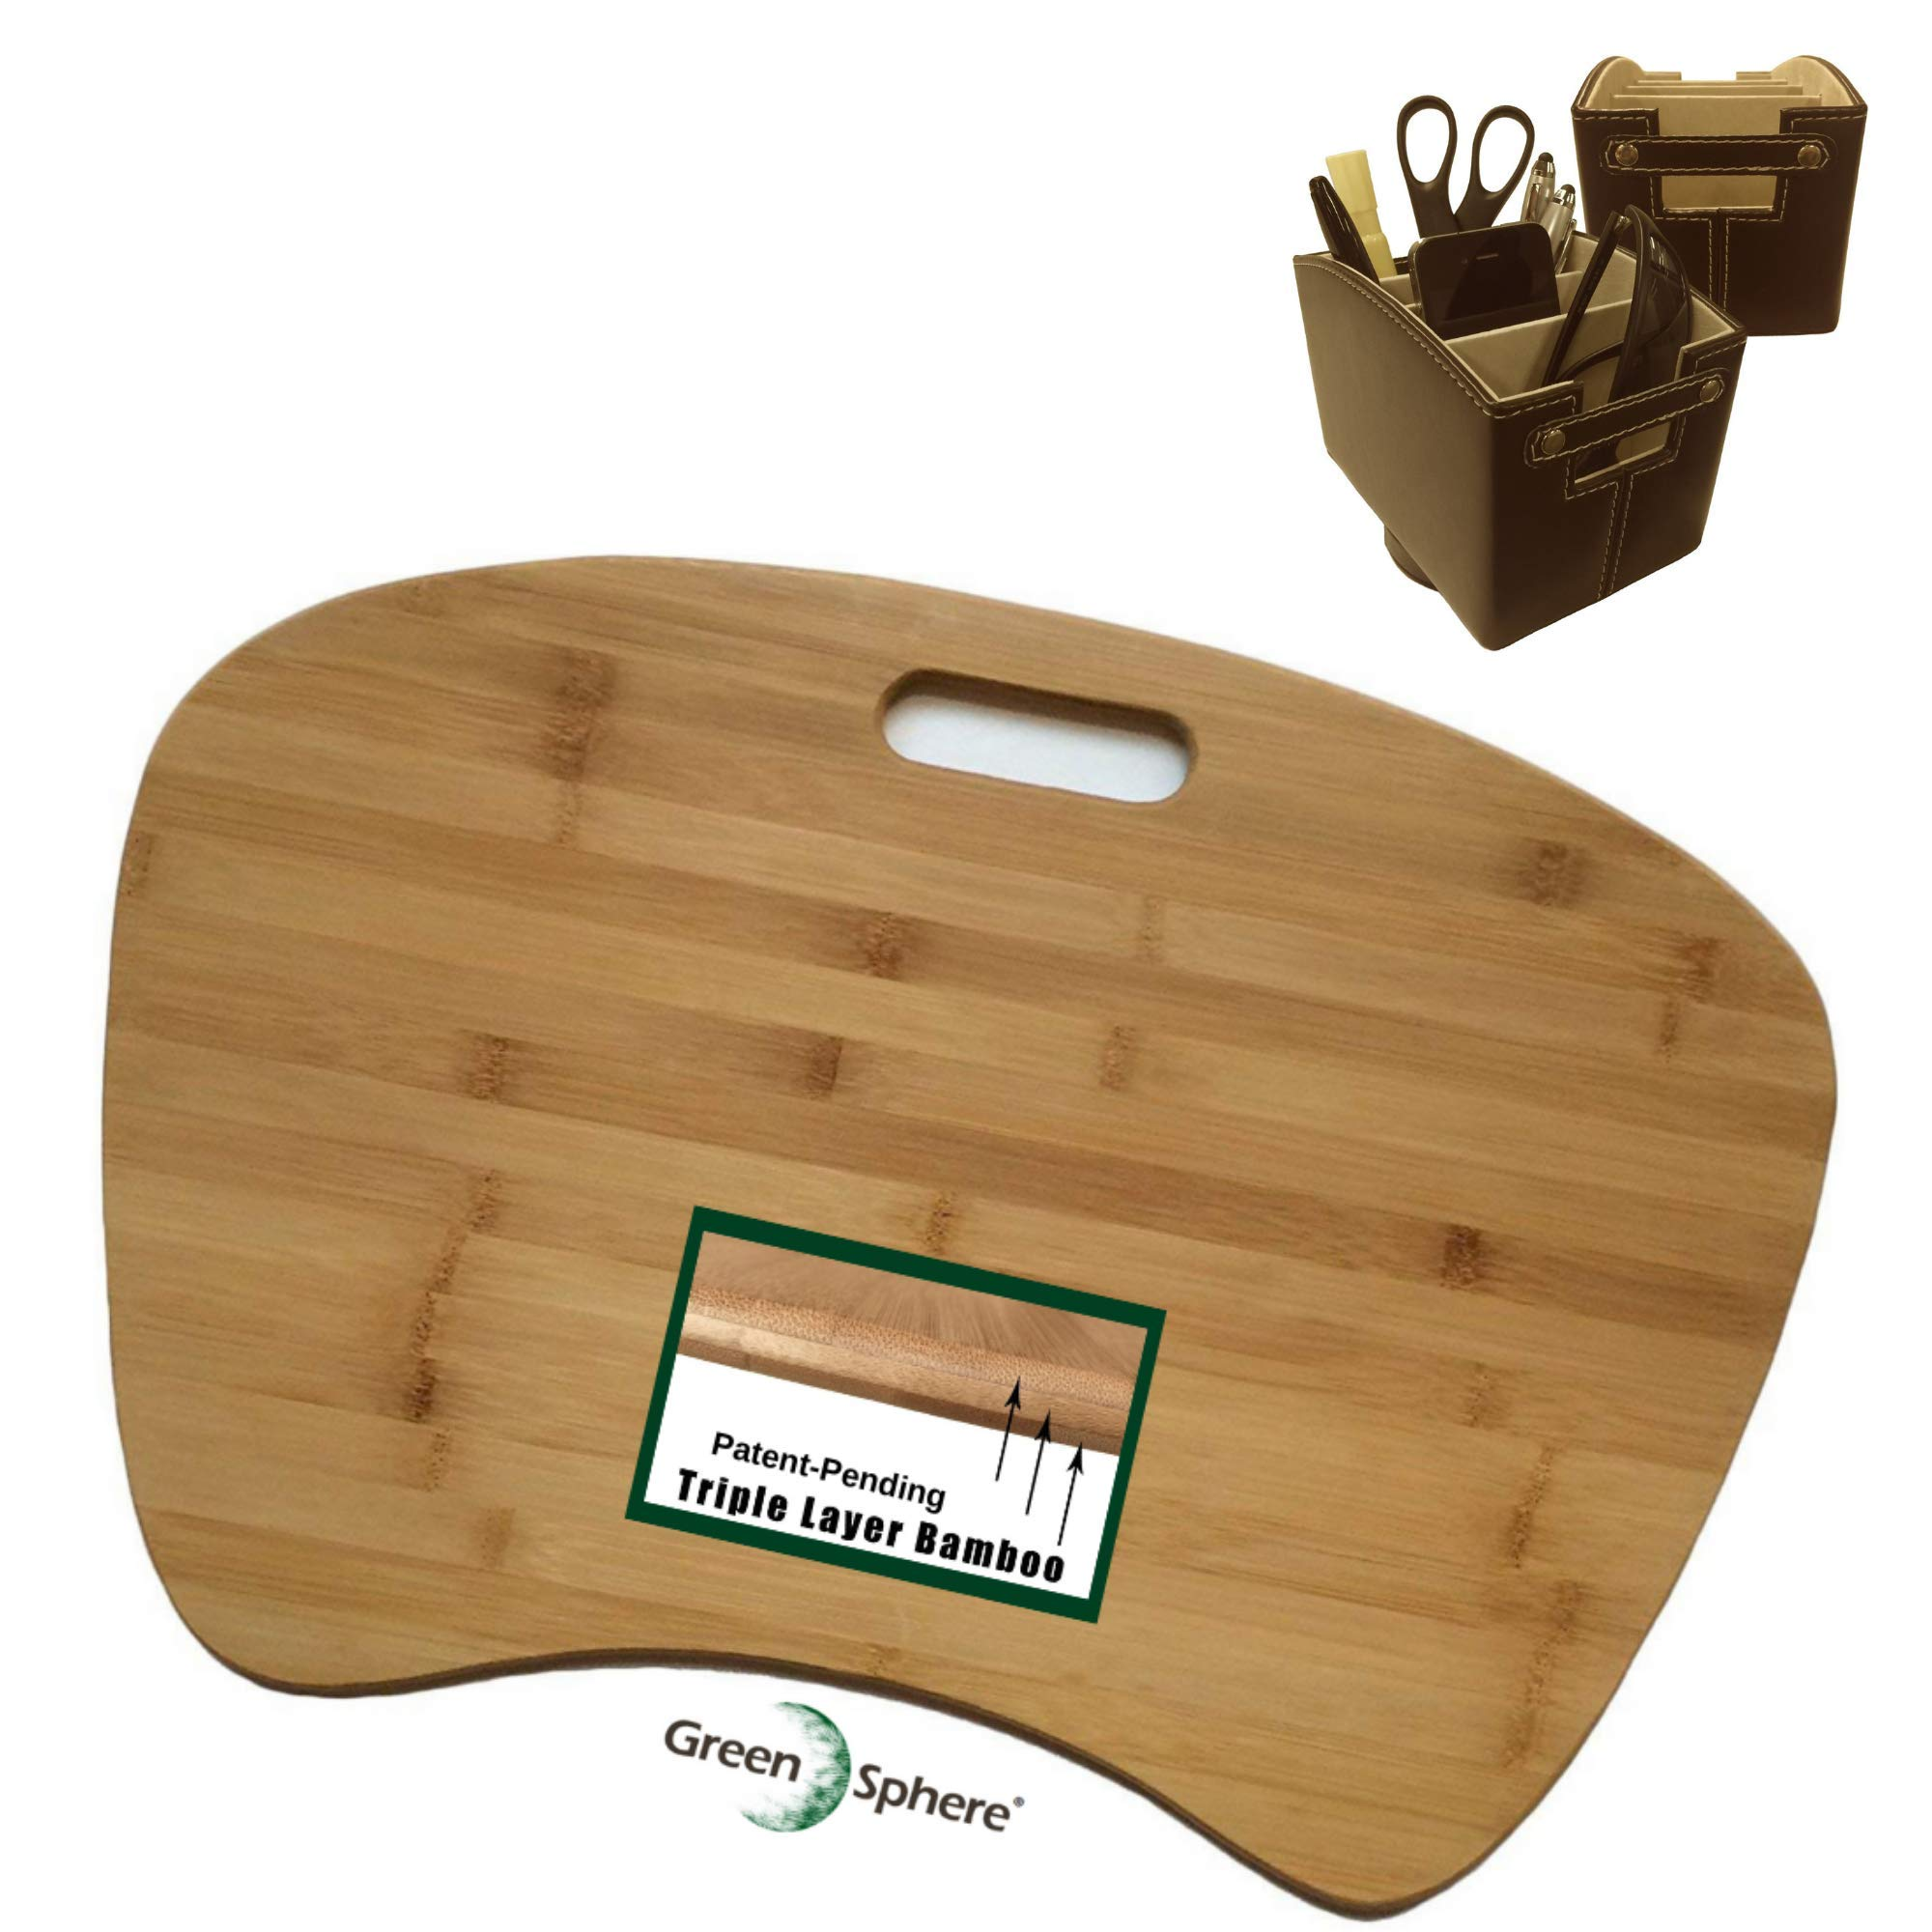 Green Sphere Bamboo Wood Lap Desk & Executive Desk Caddy | Lap Top Jumbo Size Workstation with Detachable Cushion